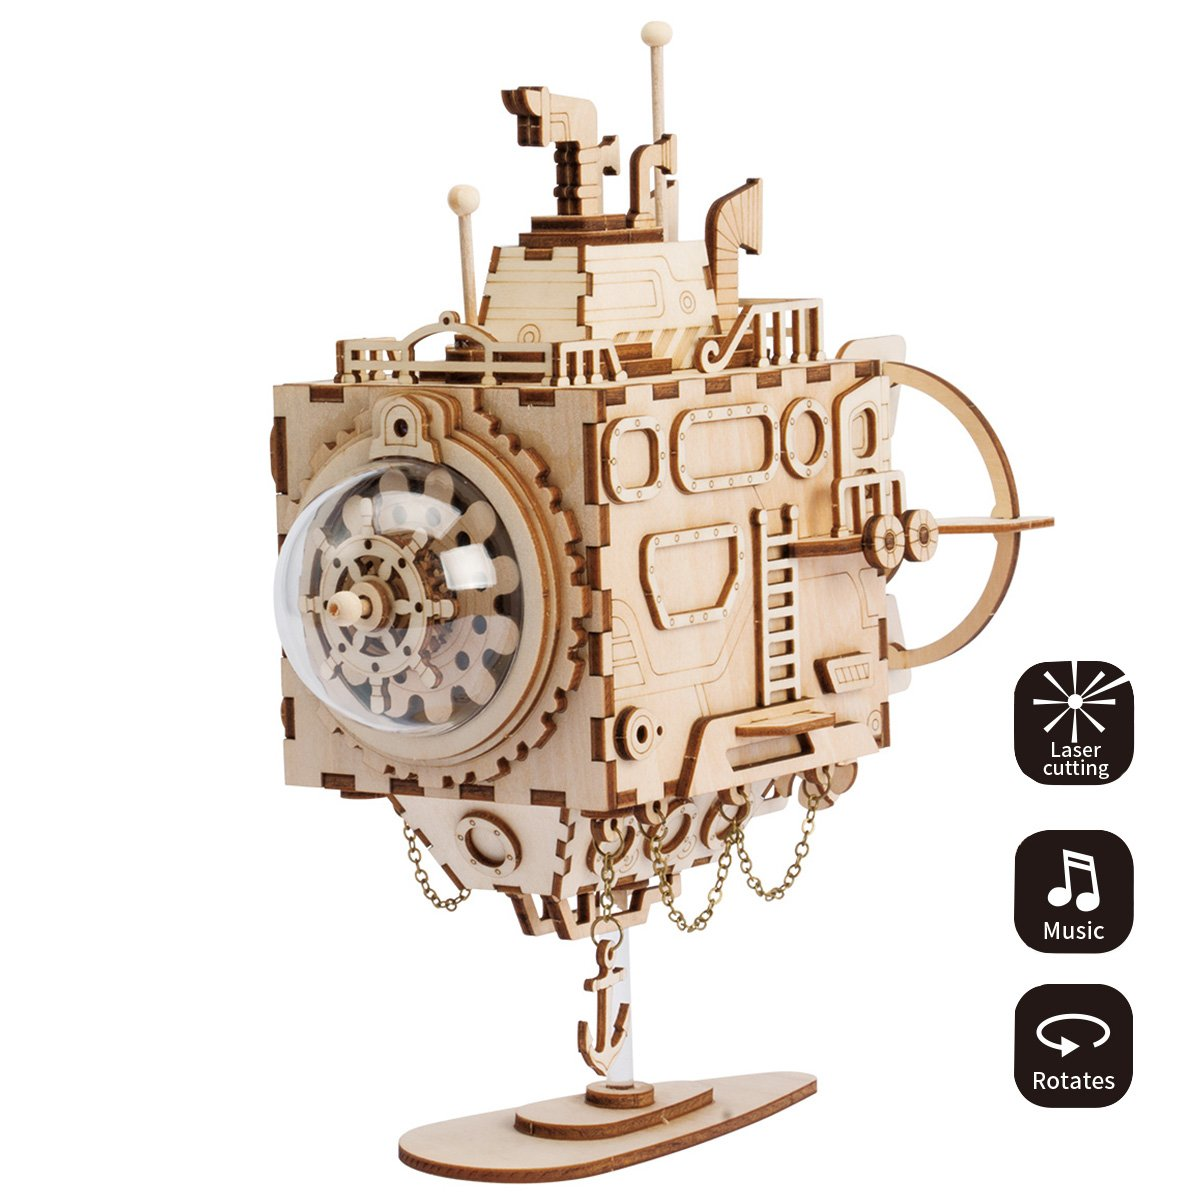 ROBOTIME 3D Laser Cut Wooden Puzzle Hand Crank Music Box Mechanism Submarine Diy kits with Lovely music Best Birthday Gift for Boys and Girls